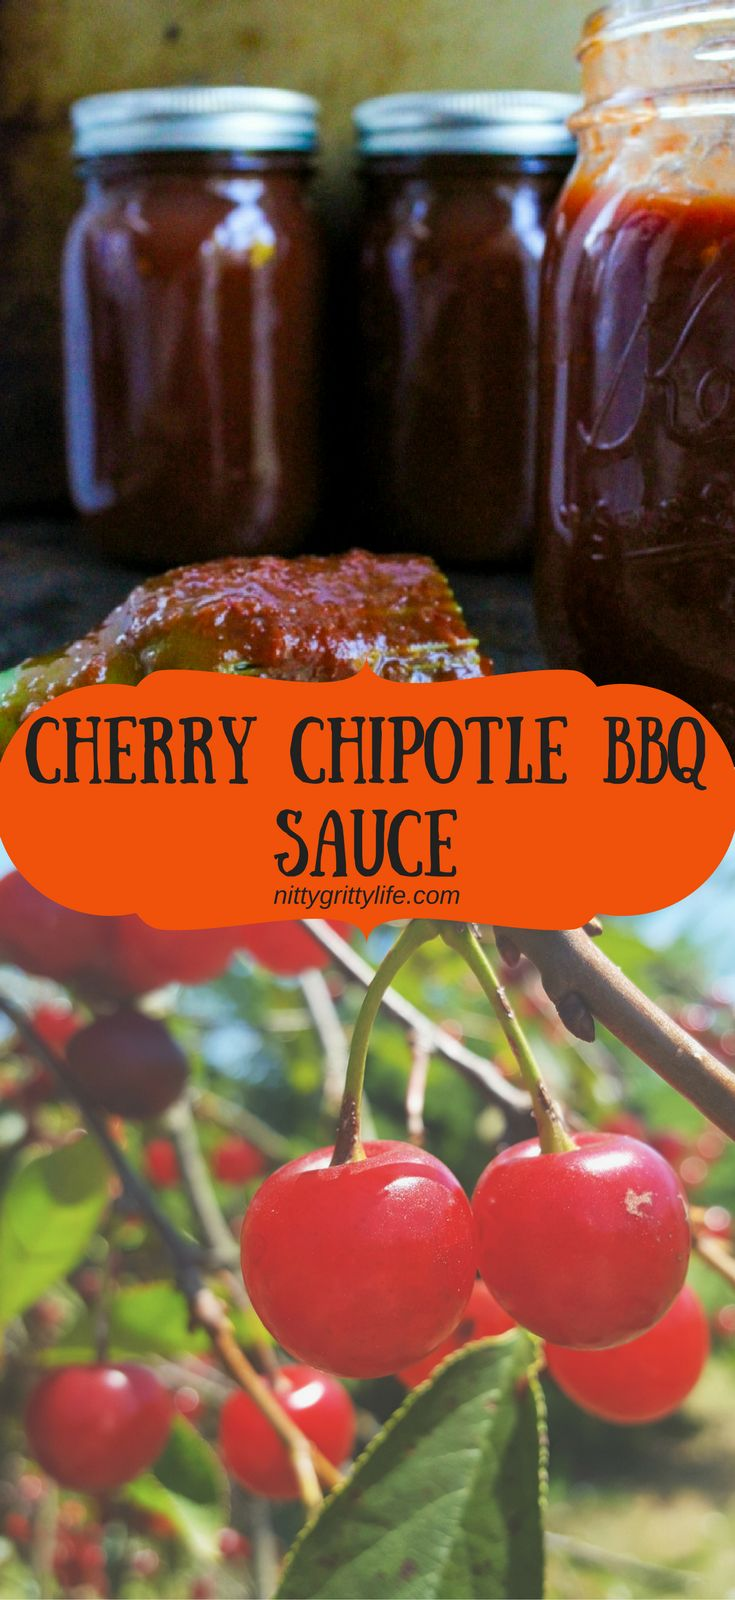 Cherry Chipotle BBQ Sauce is sweet, smoky and satisfyingly spicy. Created with tart pie cherries, this bbq sauce is best paired with pork! via @nittygrittylife